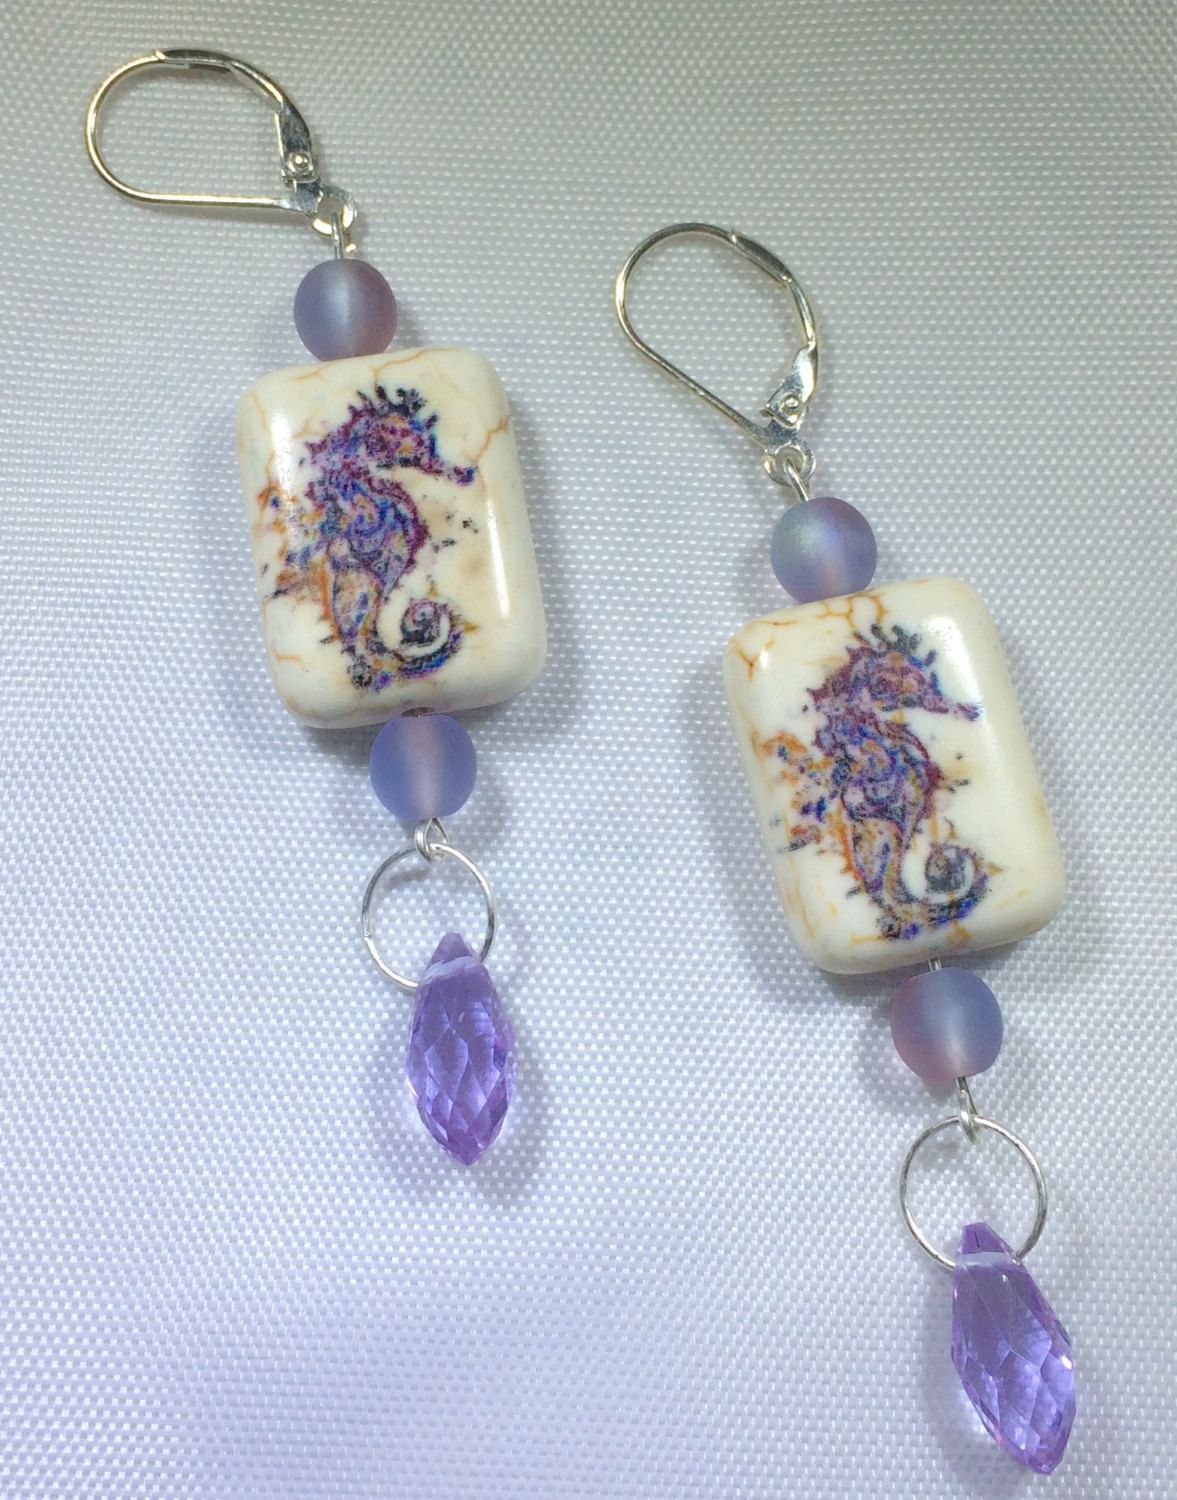 Handmade purple and white ceramic starfish silver earrings with purple briolette crystals.  Perfect for a cruise, vacation or anytime! by RideTheWindDesigns on Etsy